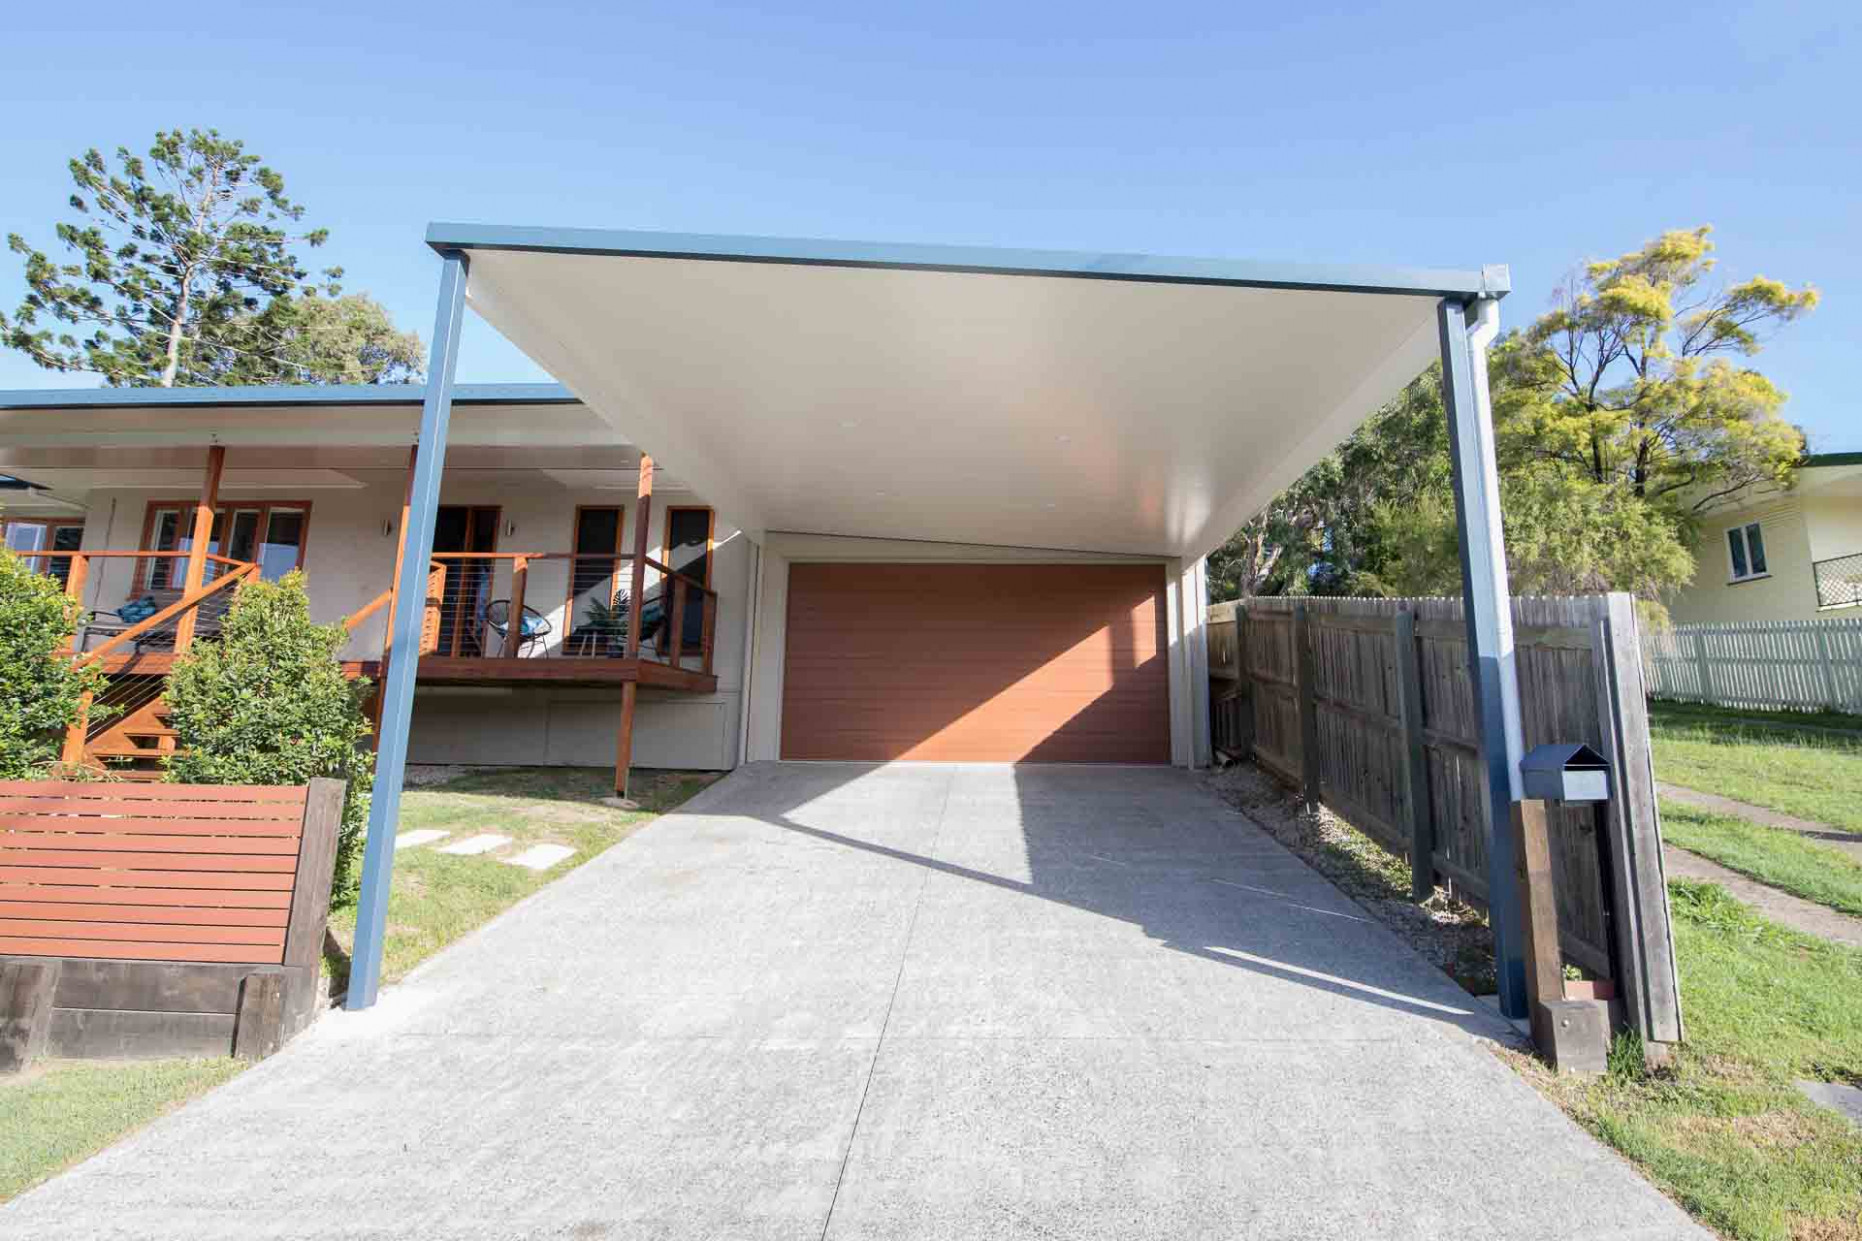 Carports Melbourne Carports By Australian Outdoor Living, VIC